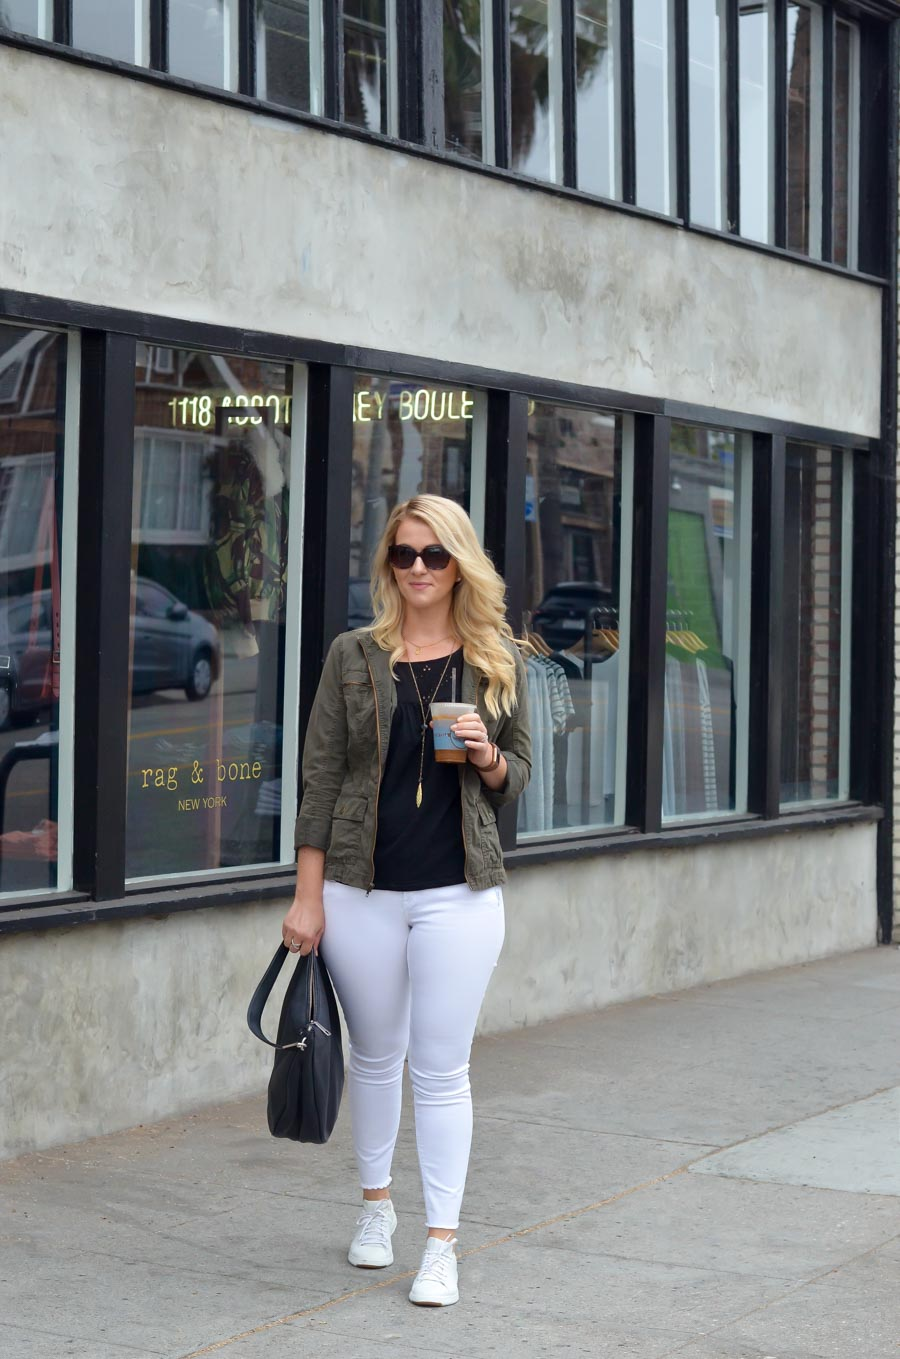 White Jeans w. Sneakers for Fall Women's Fashion